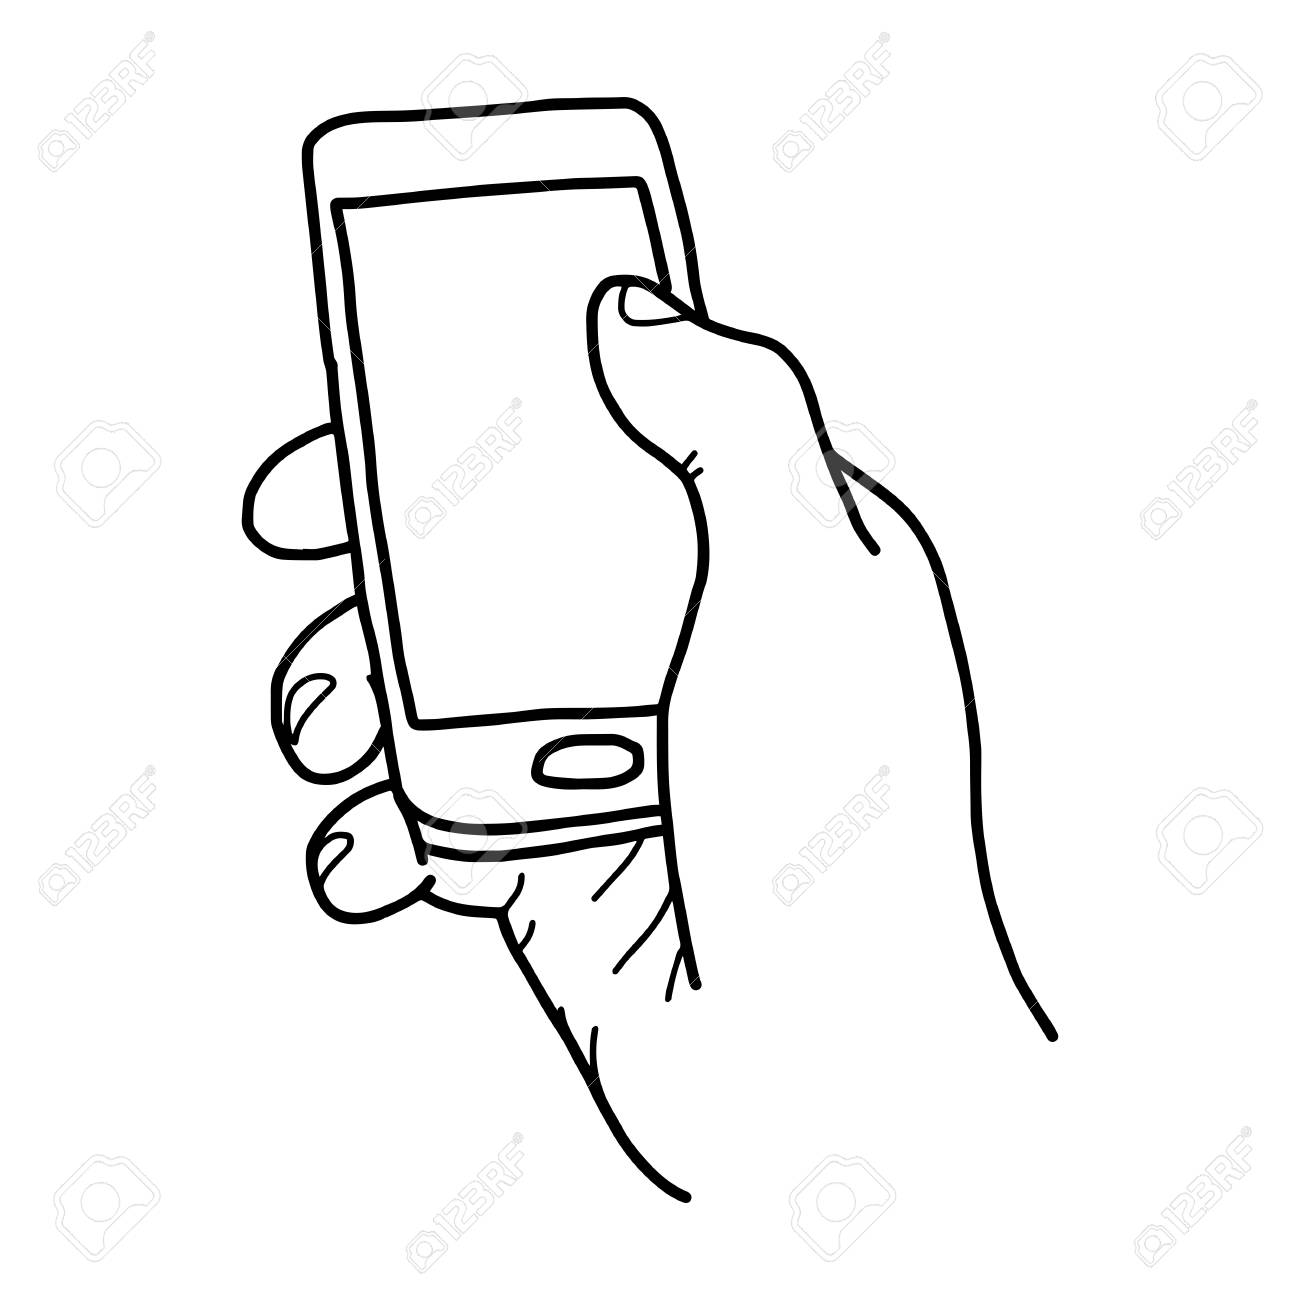 1300x1300 Right Hand Holding Small Mobile Phone With Blank Space